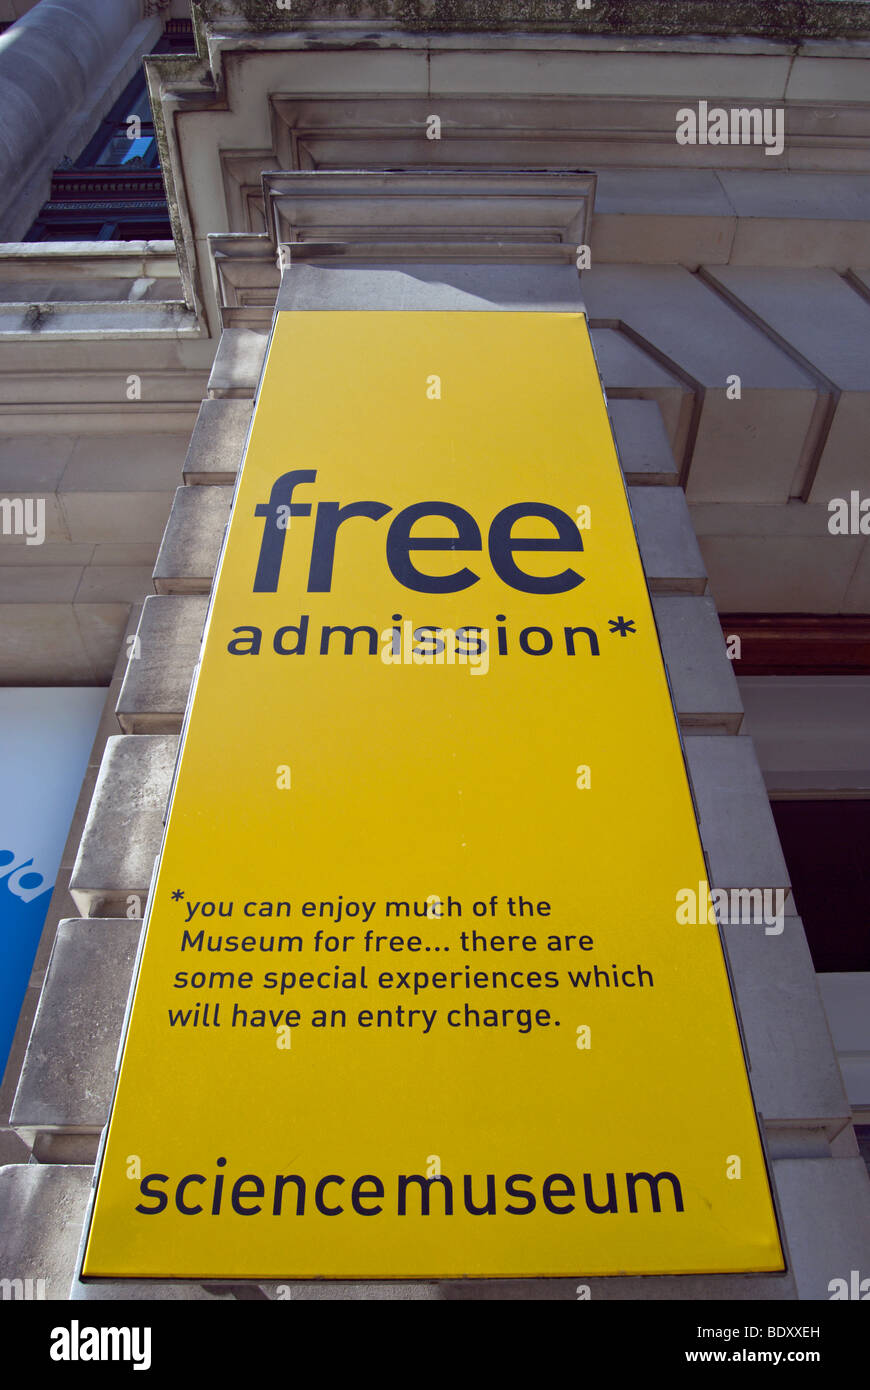 free admission banner at the london science museum, noting some exhibitions require separate admission charge - Stock Image